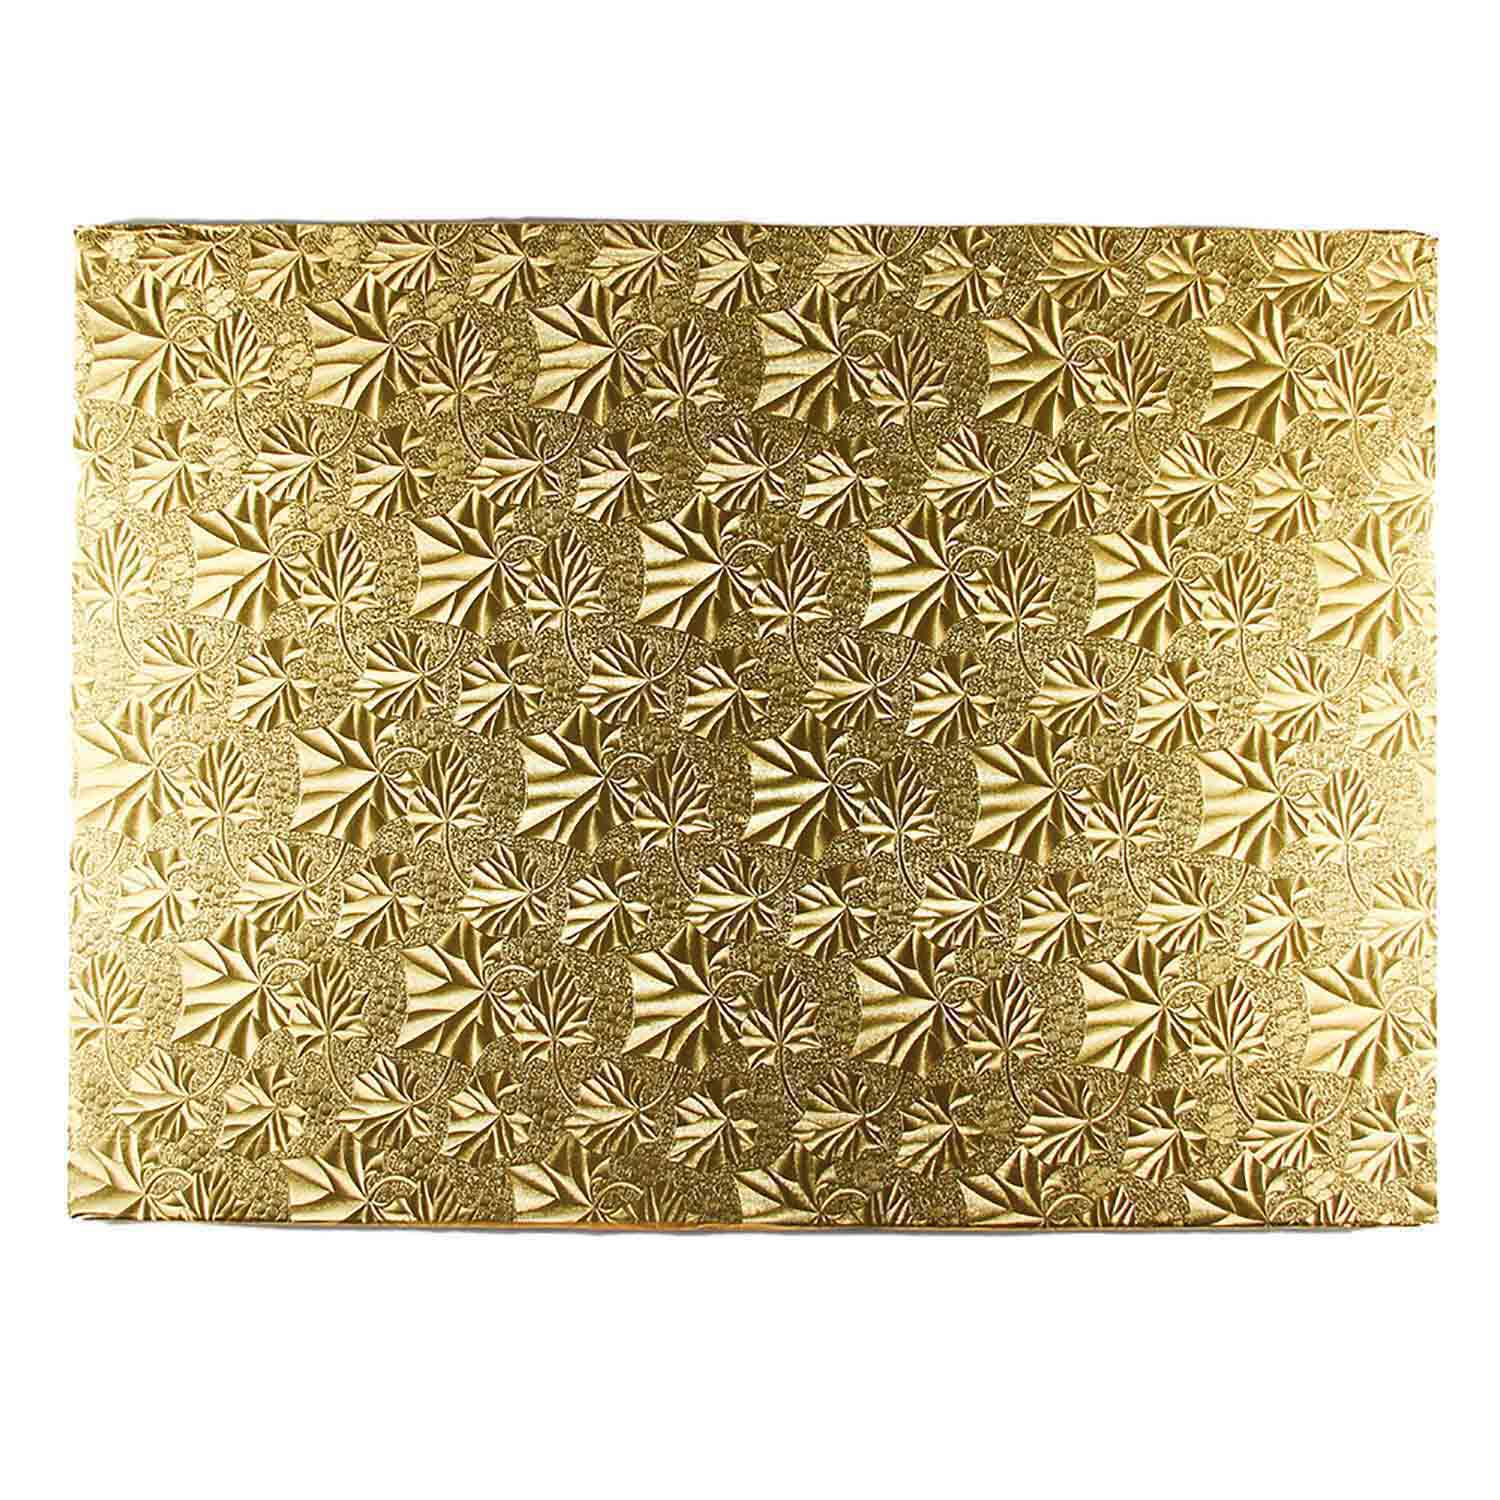 "19"" x 14"" Gold Foil Half Sheet Cake Drum"